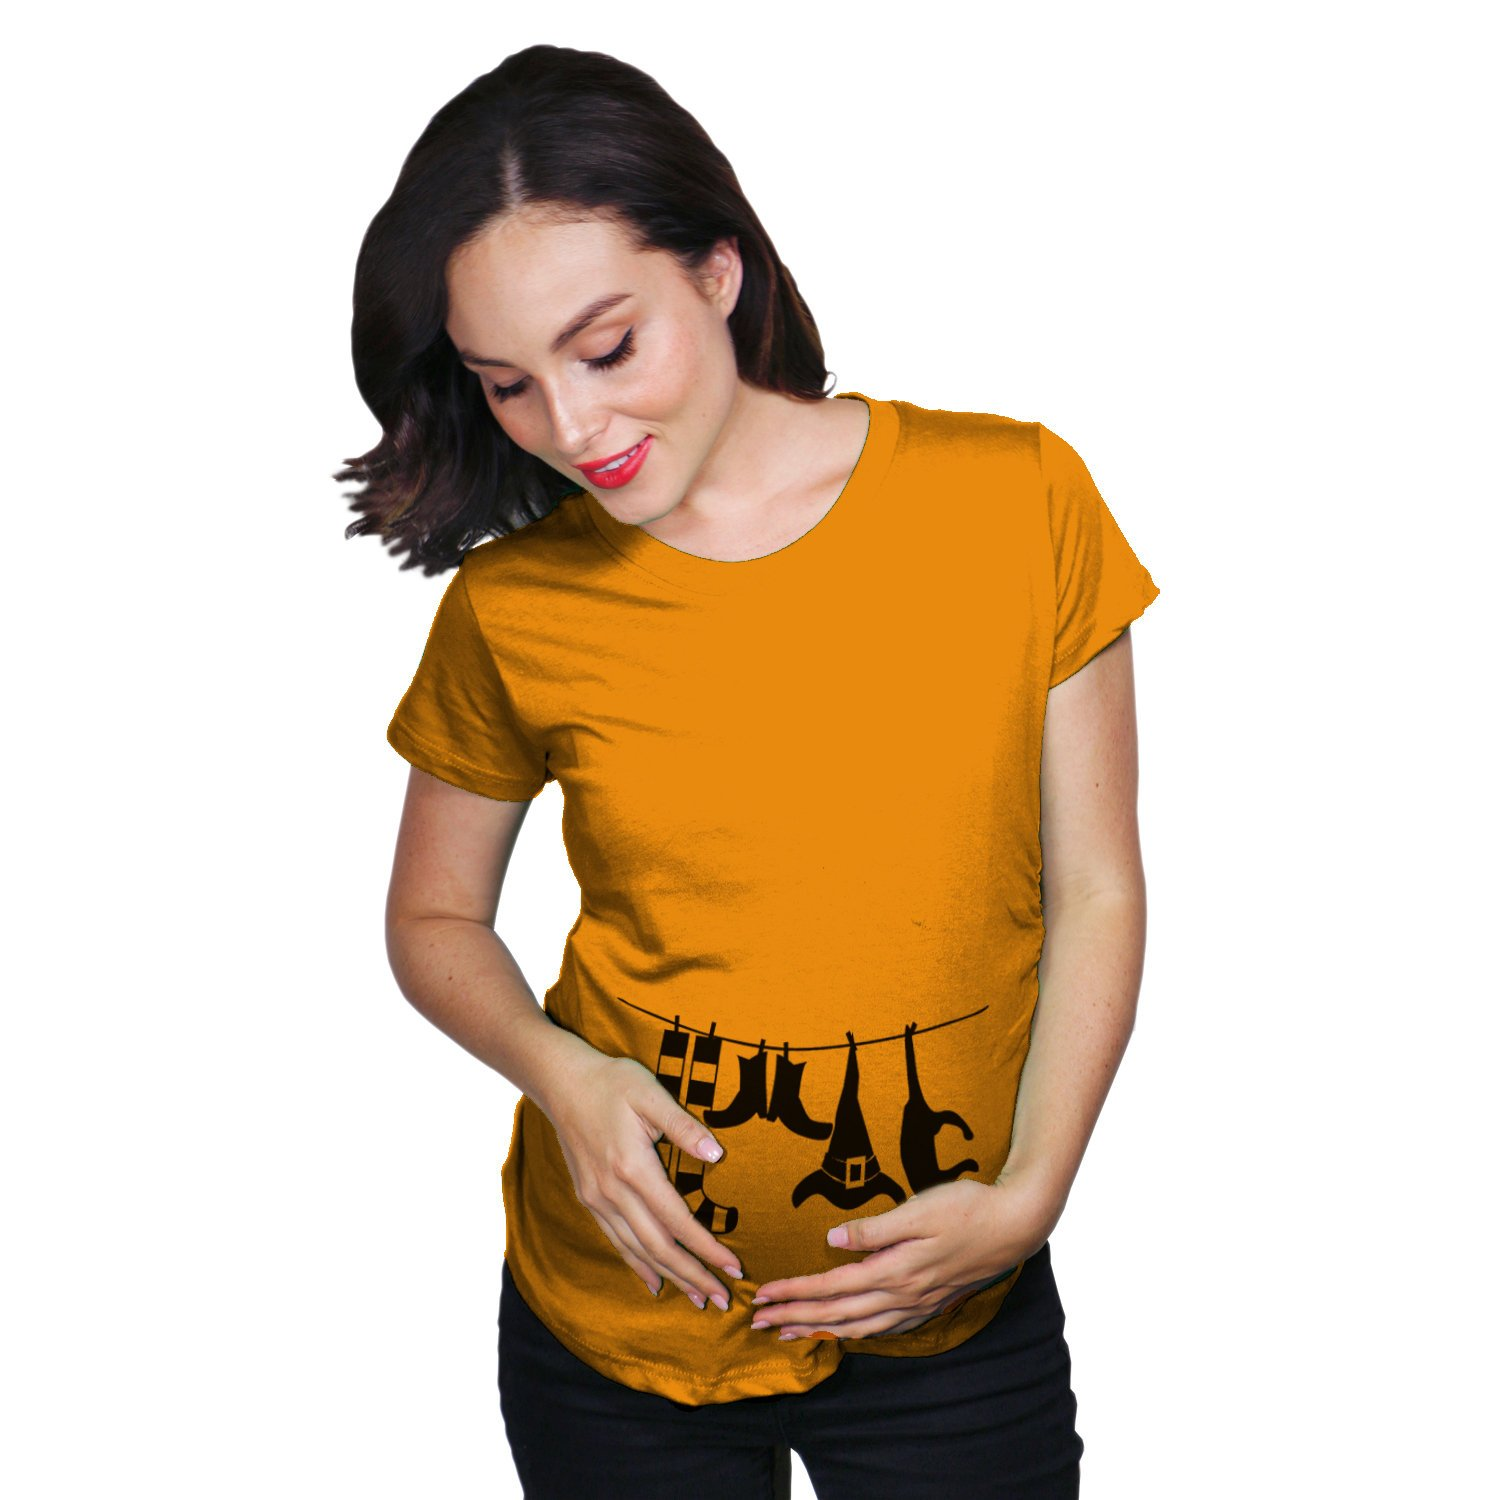 Halloween Pregnancy T Shirt.Witch Pregnancy Shirt Witch Clothesline Halloween Maternity T Shirt New Mom Baby Halloween Halloween Pregnancy Reveal